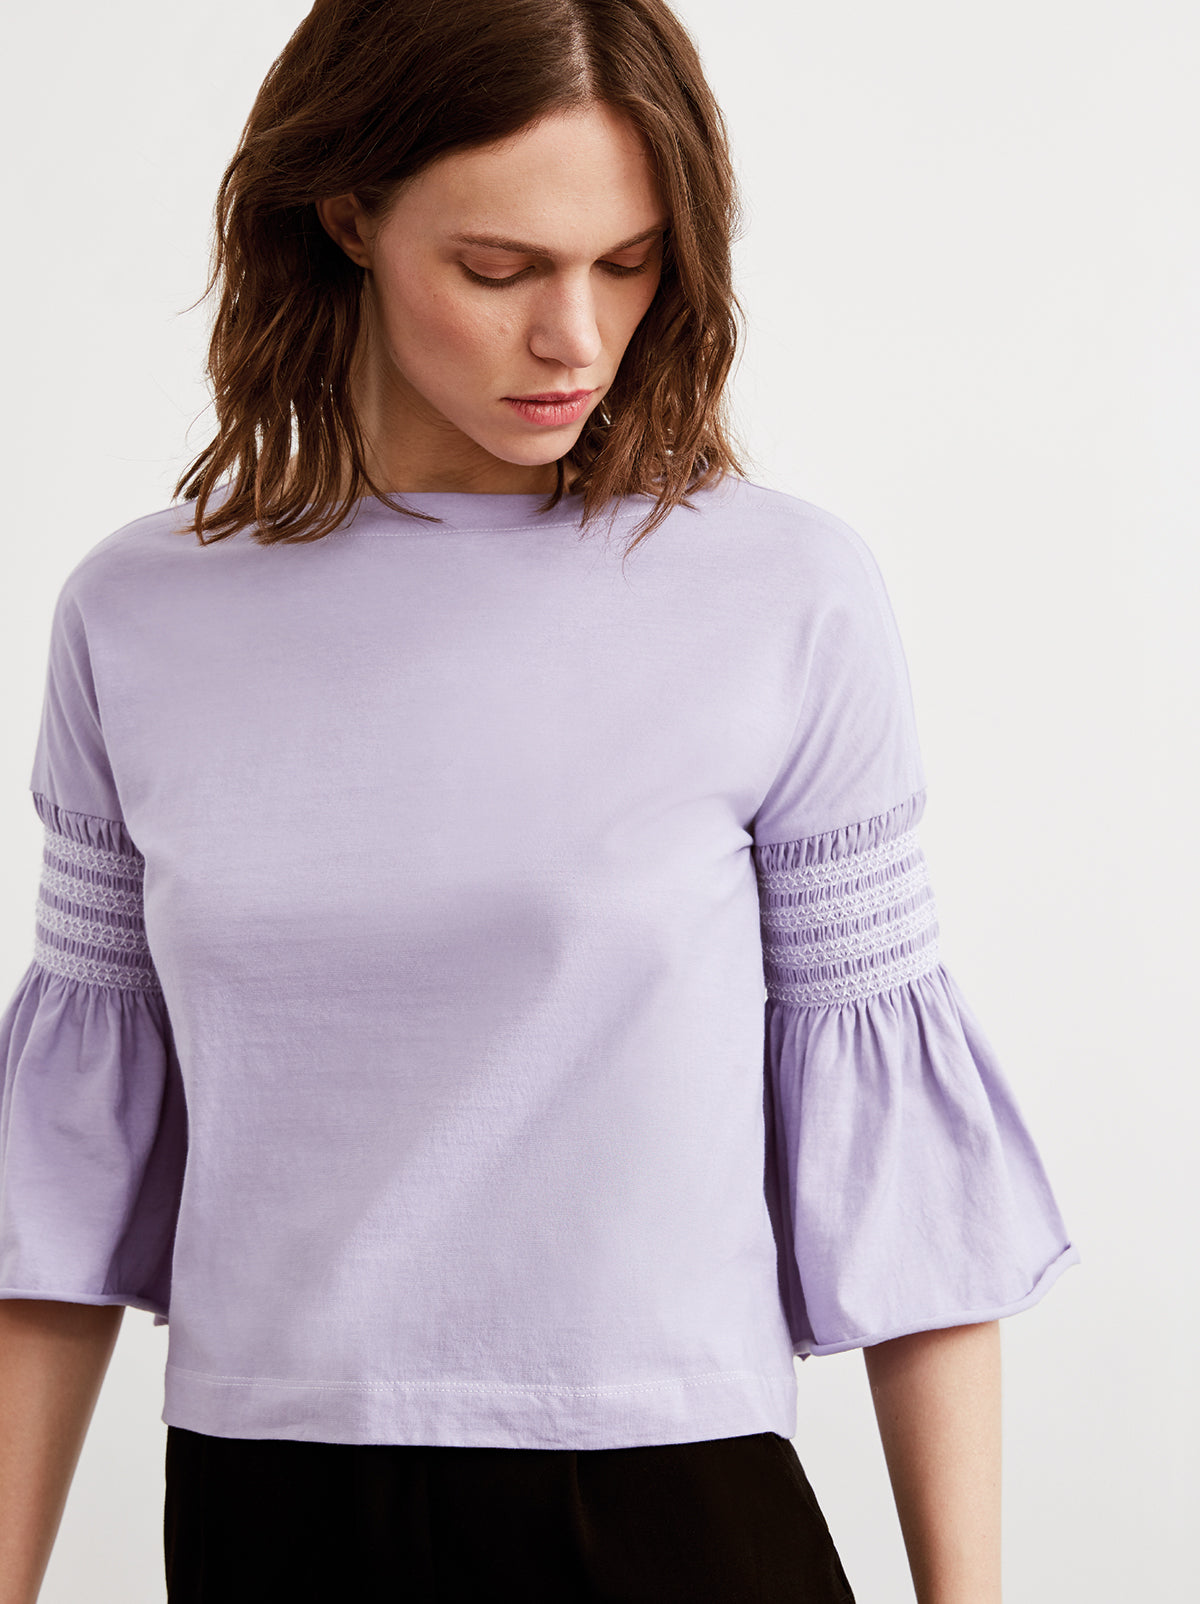 Esme Lilac Smocked Sleeve T-Shirt by KITRI Studio